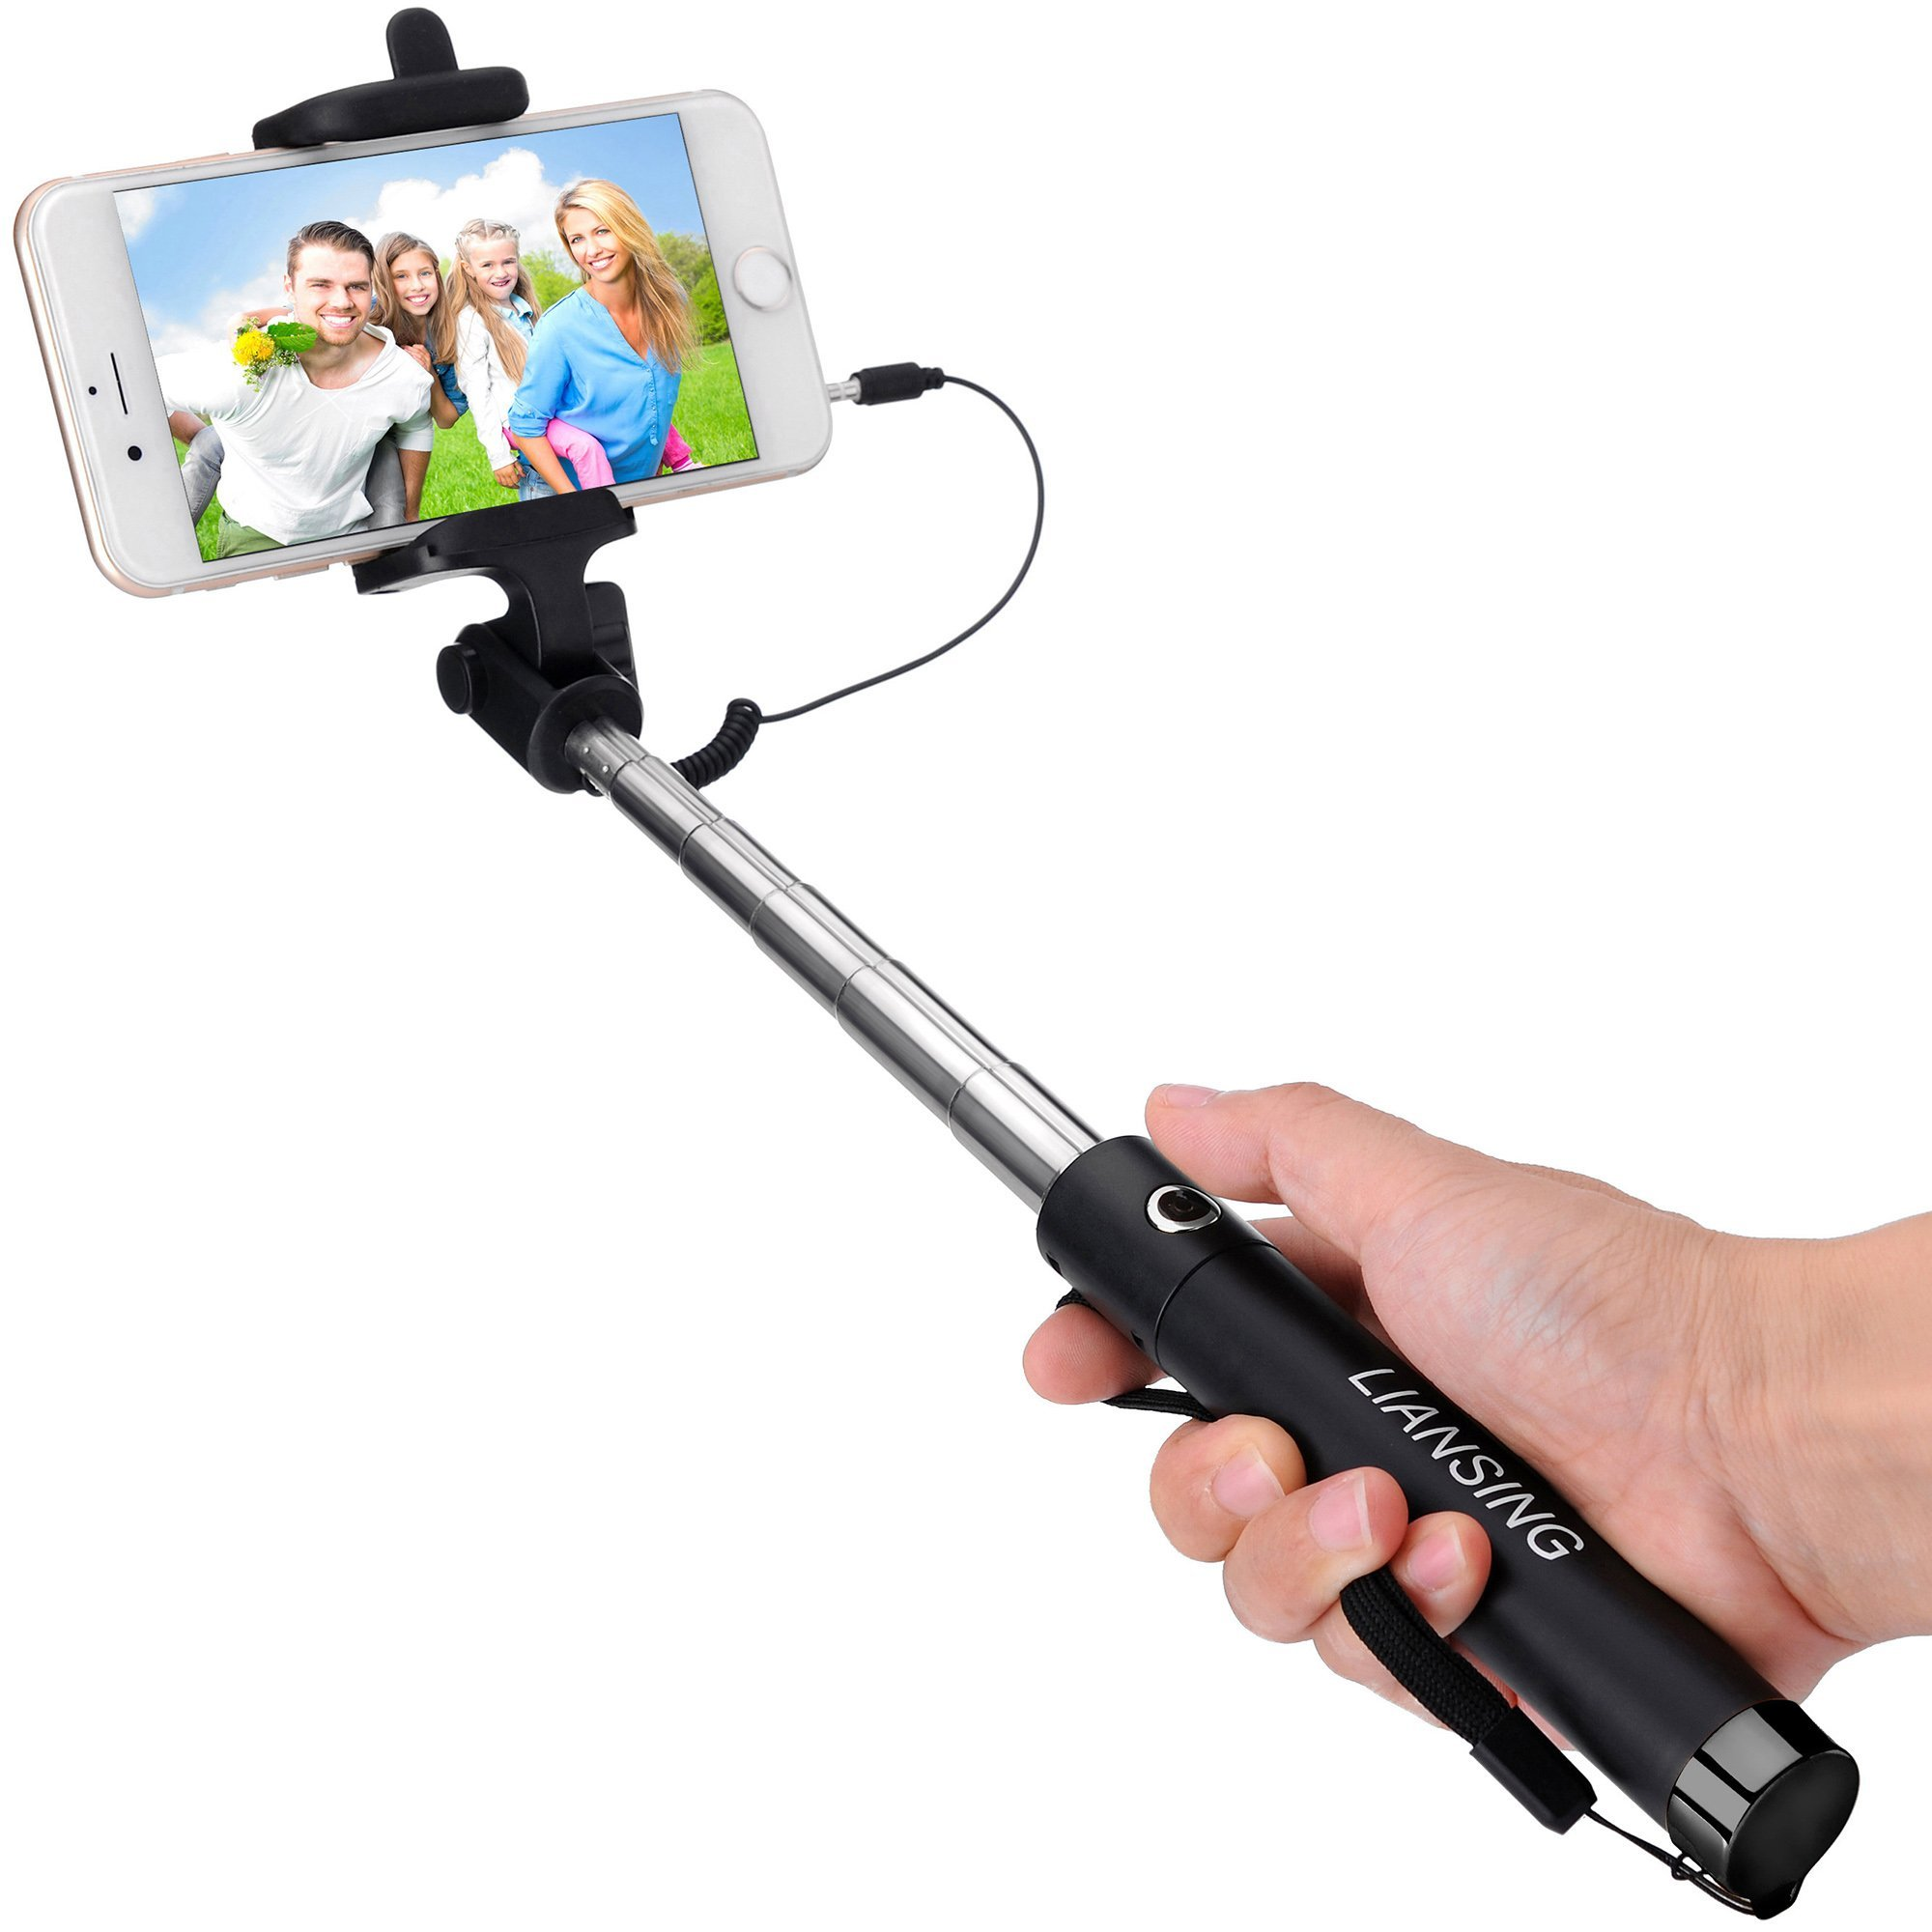 Selfie Stick, LIANSING Monopods Wired Self portrait stick One-piece U-Shape ultra compact Foldable and Extendable Self-Stick with waterproof Bag for iPhone6 6s 6plus 5s SE Samsung S7 S6 Black